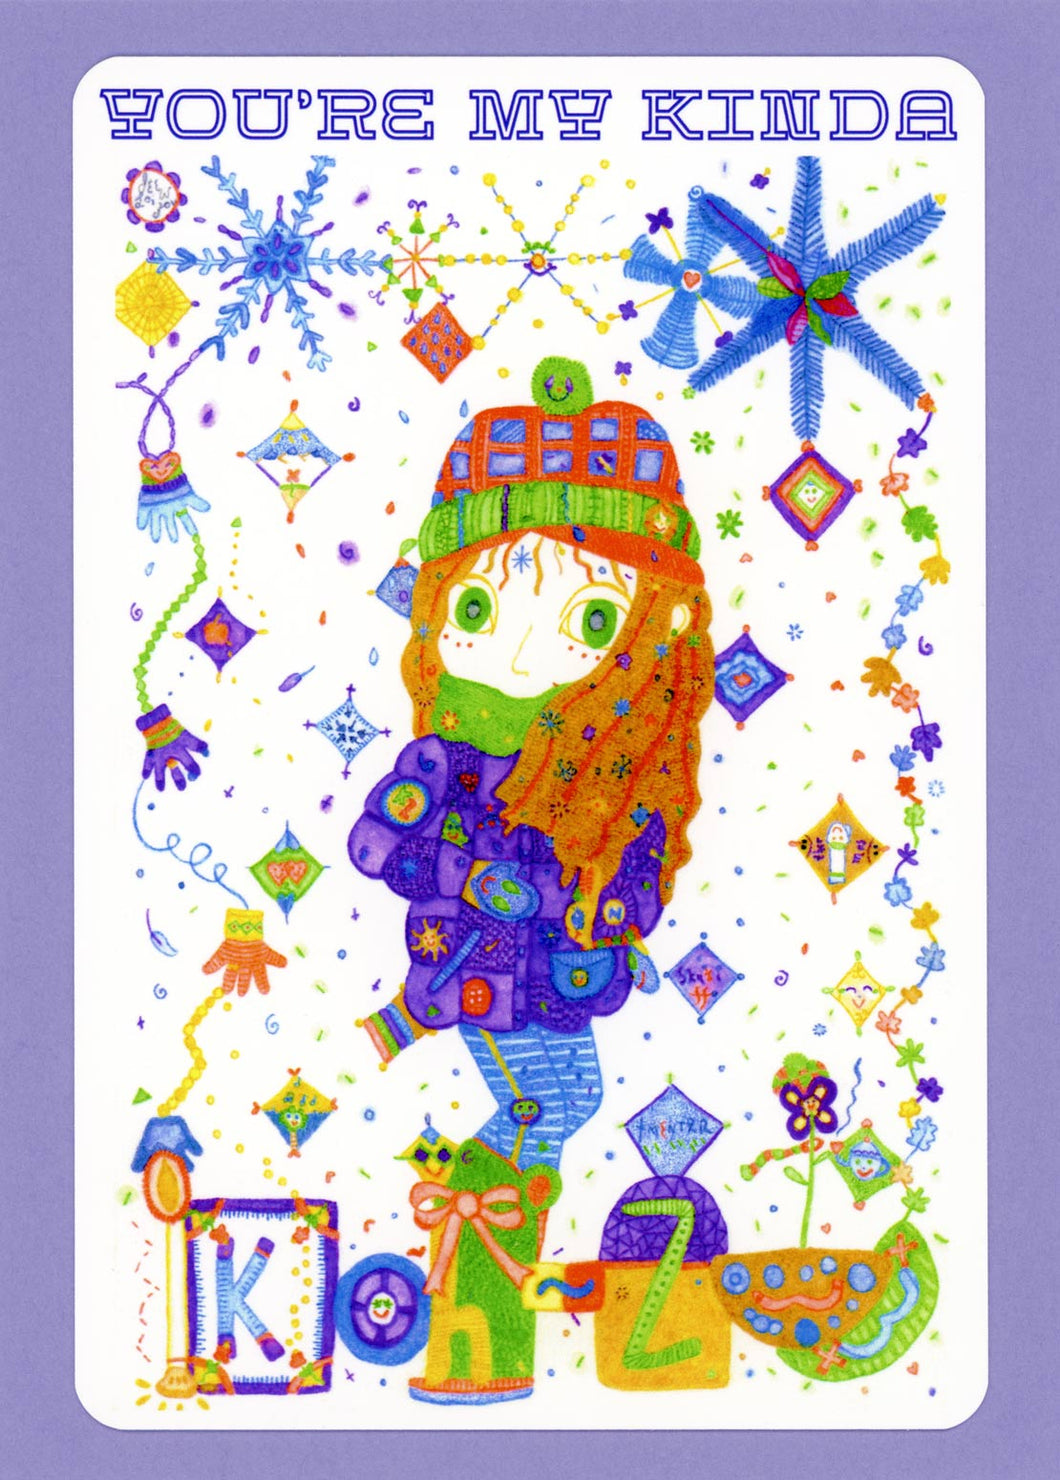 Koh-Zee, Cute, Cozy, Colorful, Fun, Winter, Snowflakes, Happy, Collectible, Notecard